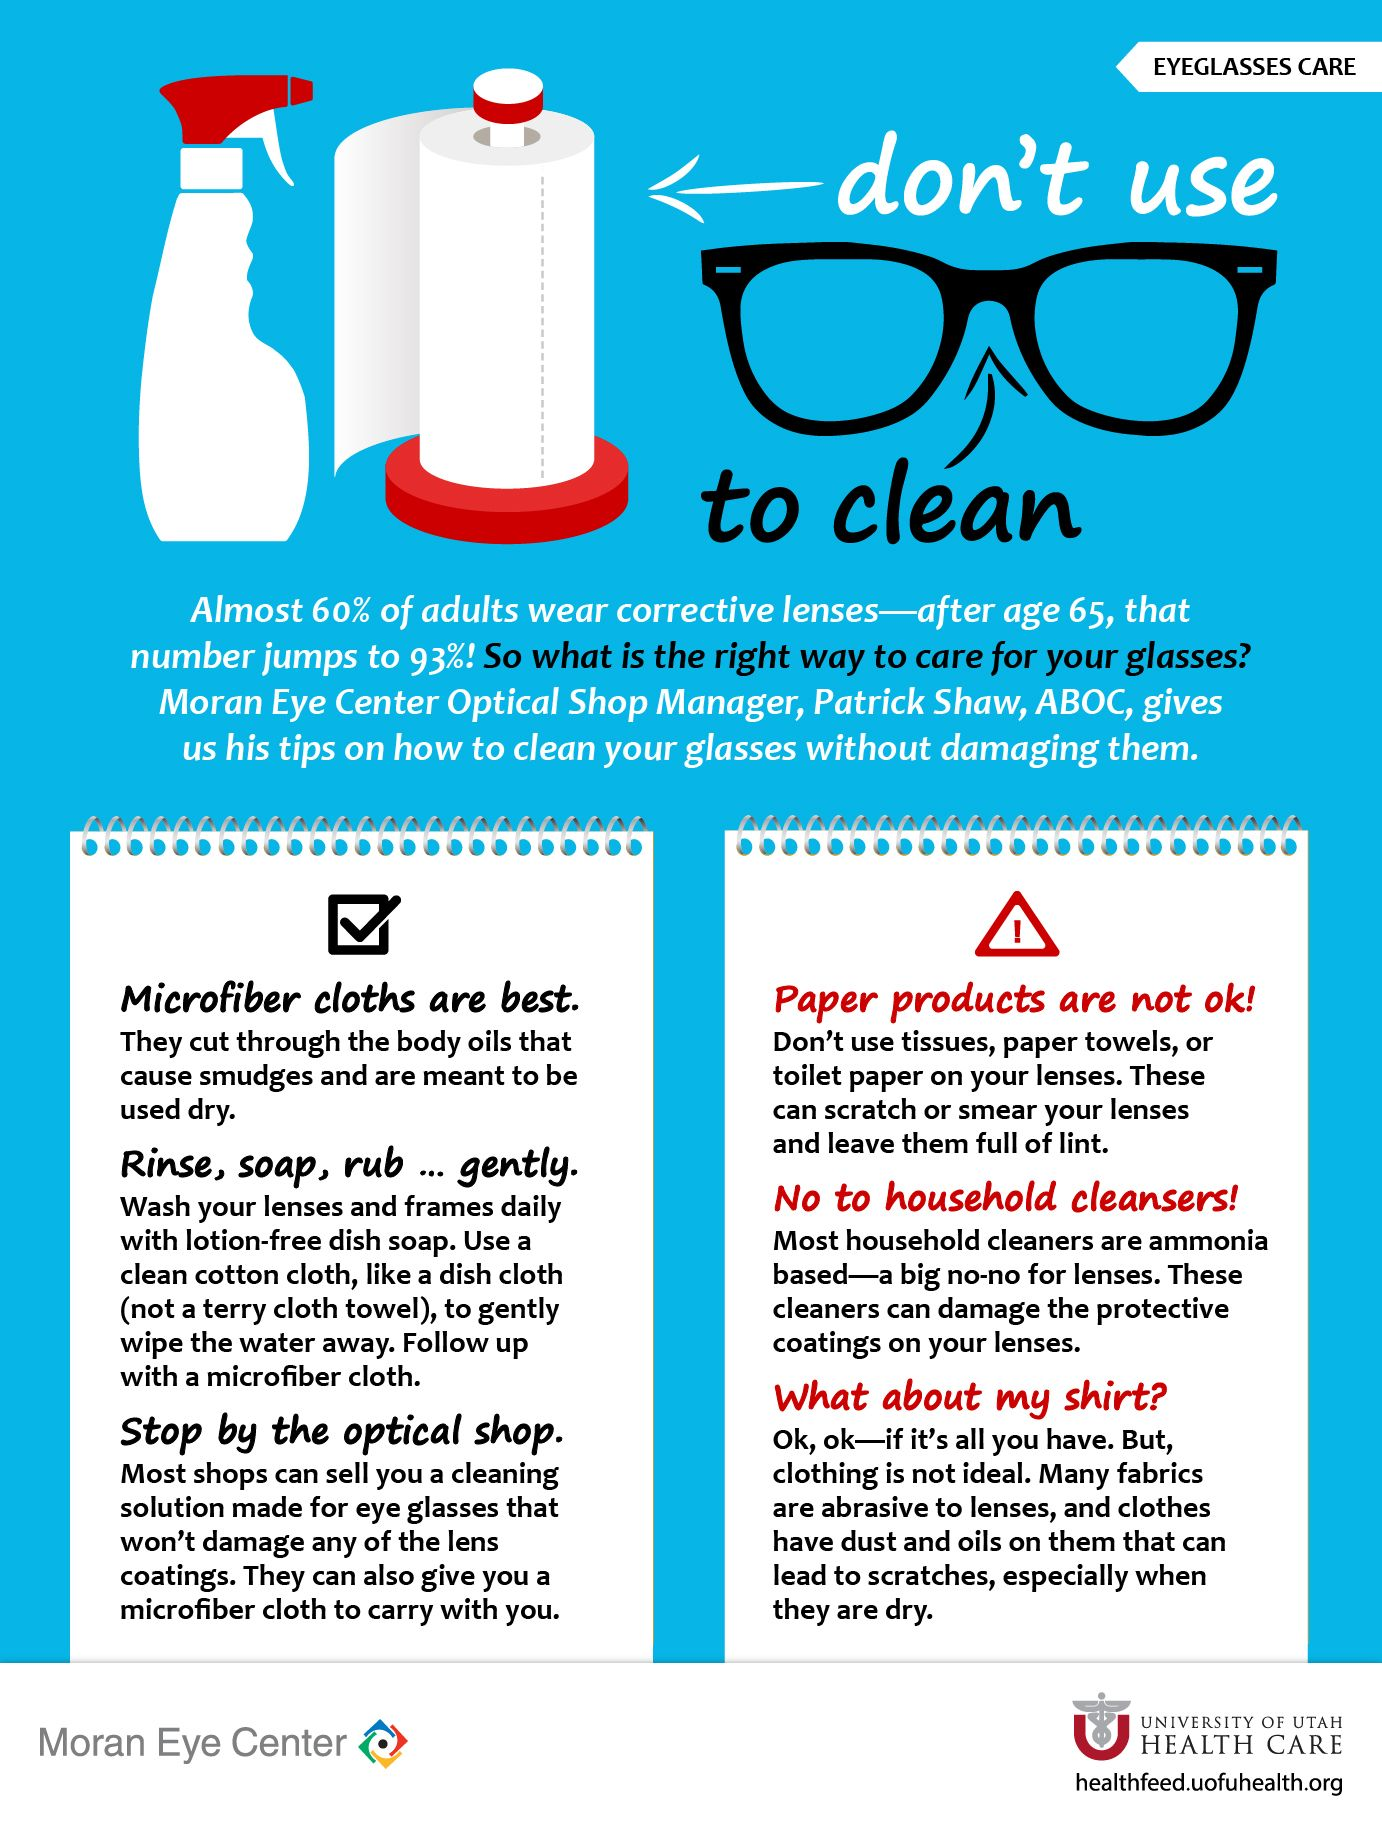 Take Care Of Your Glasses Optician Marketing Optical Shop Eye Health